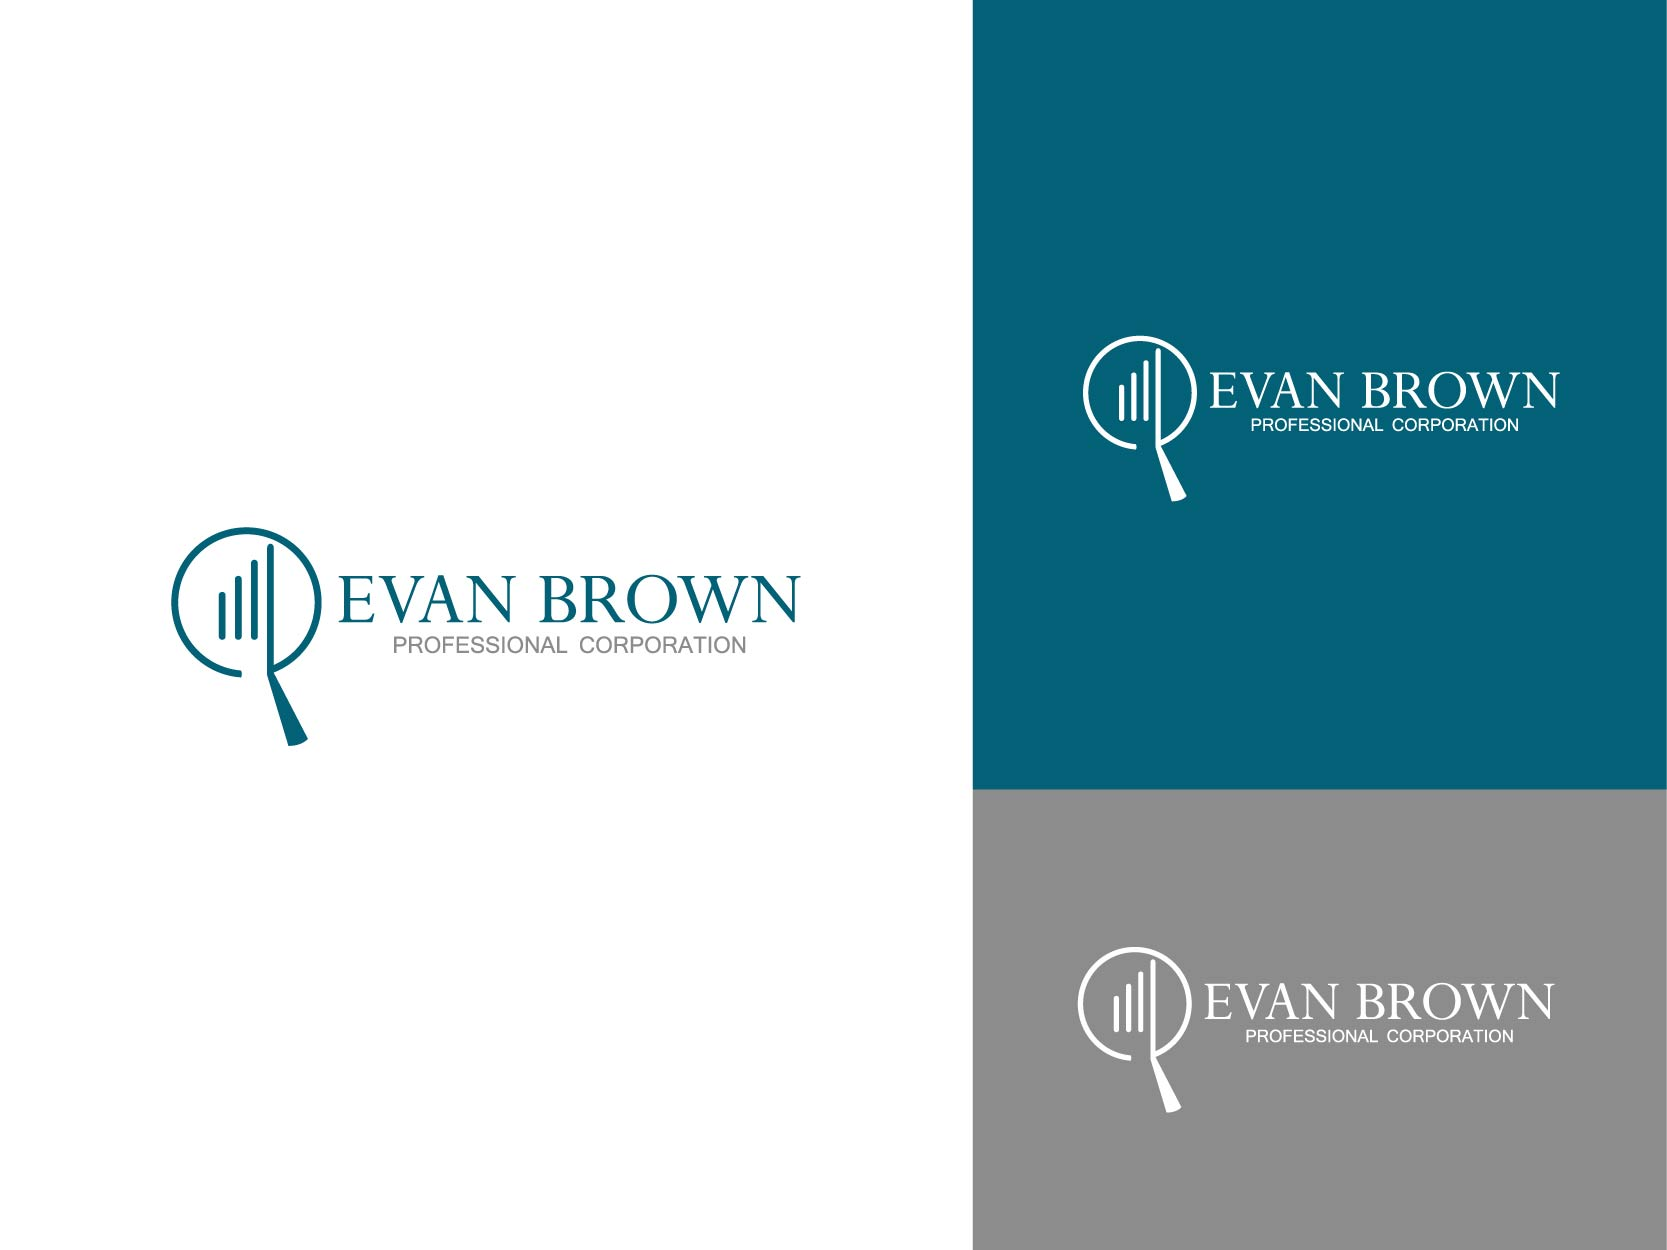 Logo Design by Osi Indra - Entry No. 49 in the Logo Design Contest Inspiring Logo Design for Evan Brown Professional Corporation.